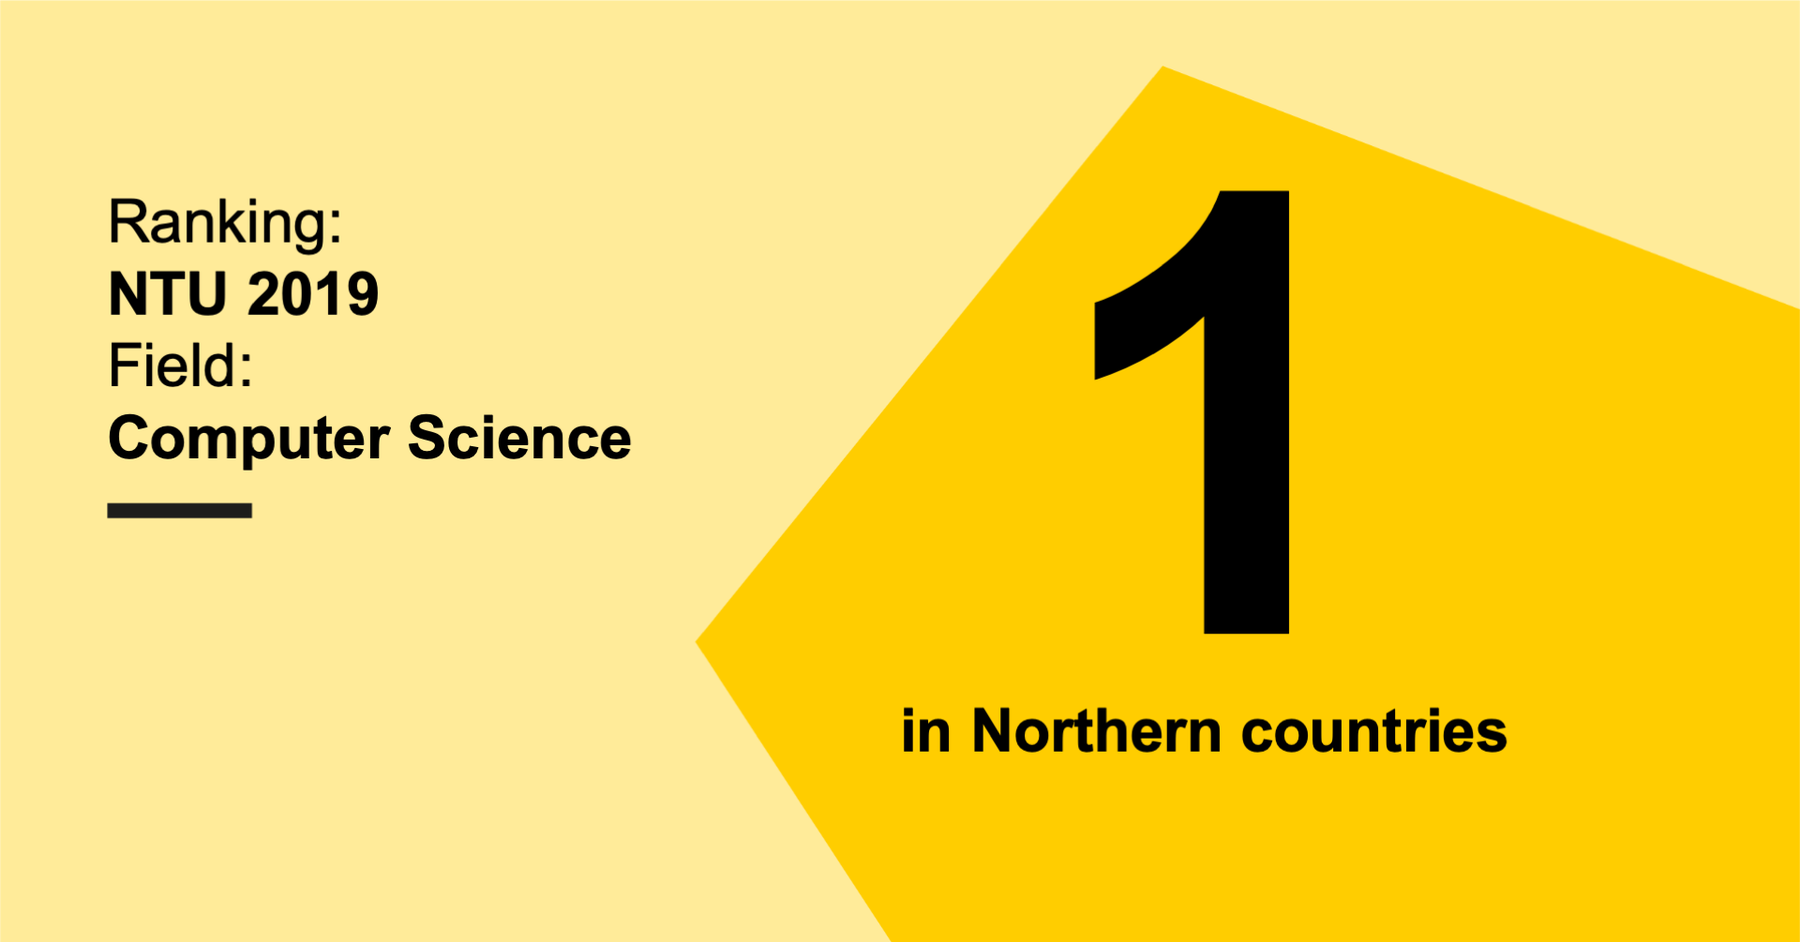 Computer Science in Aalto University is ranked first in northern countries by NTU 2019 Ranking